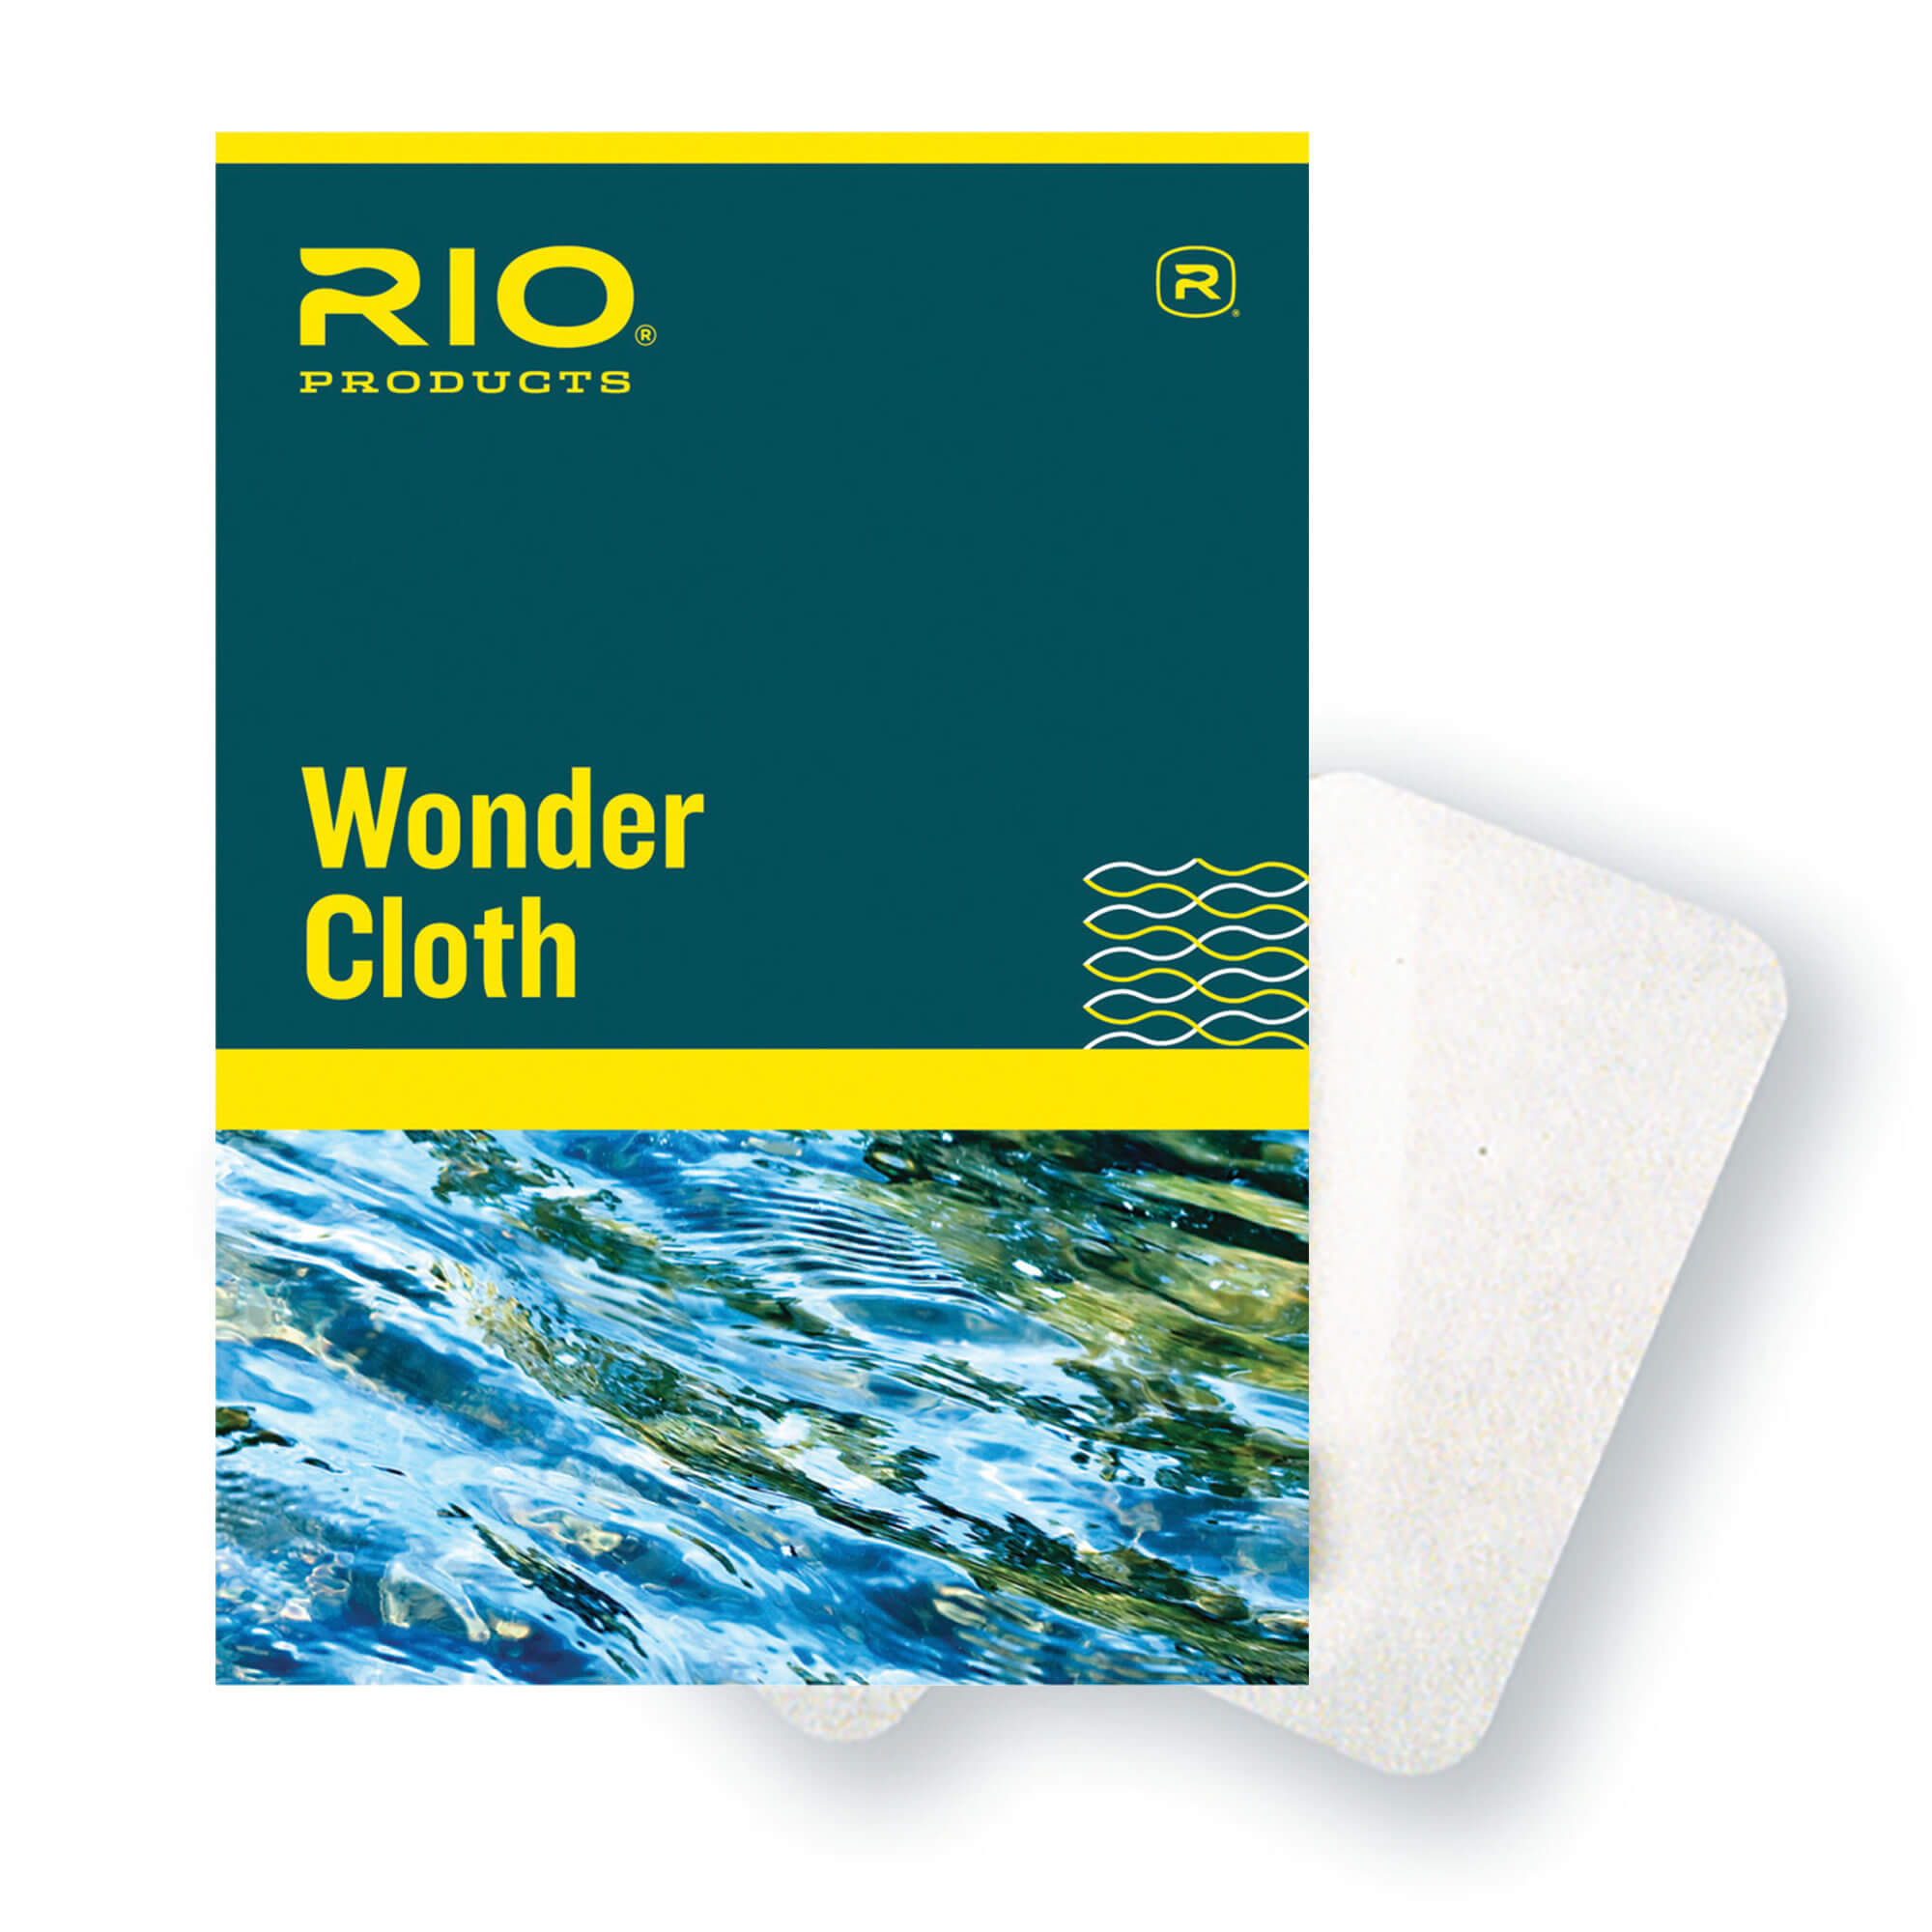 Rio Wonder Cloth